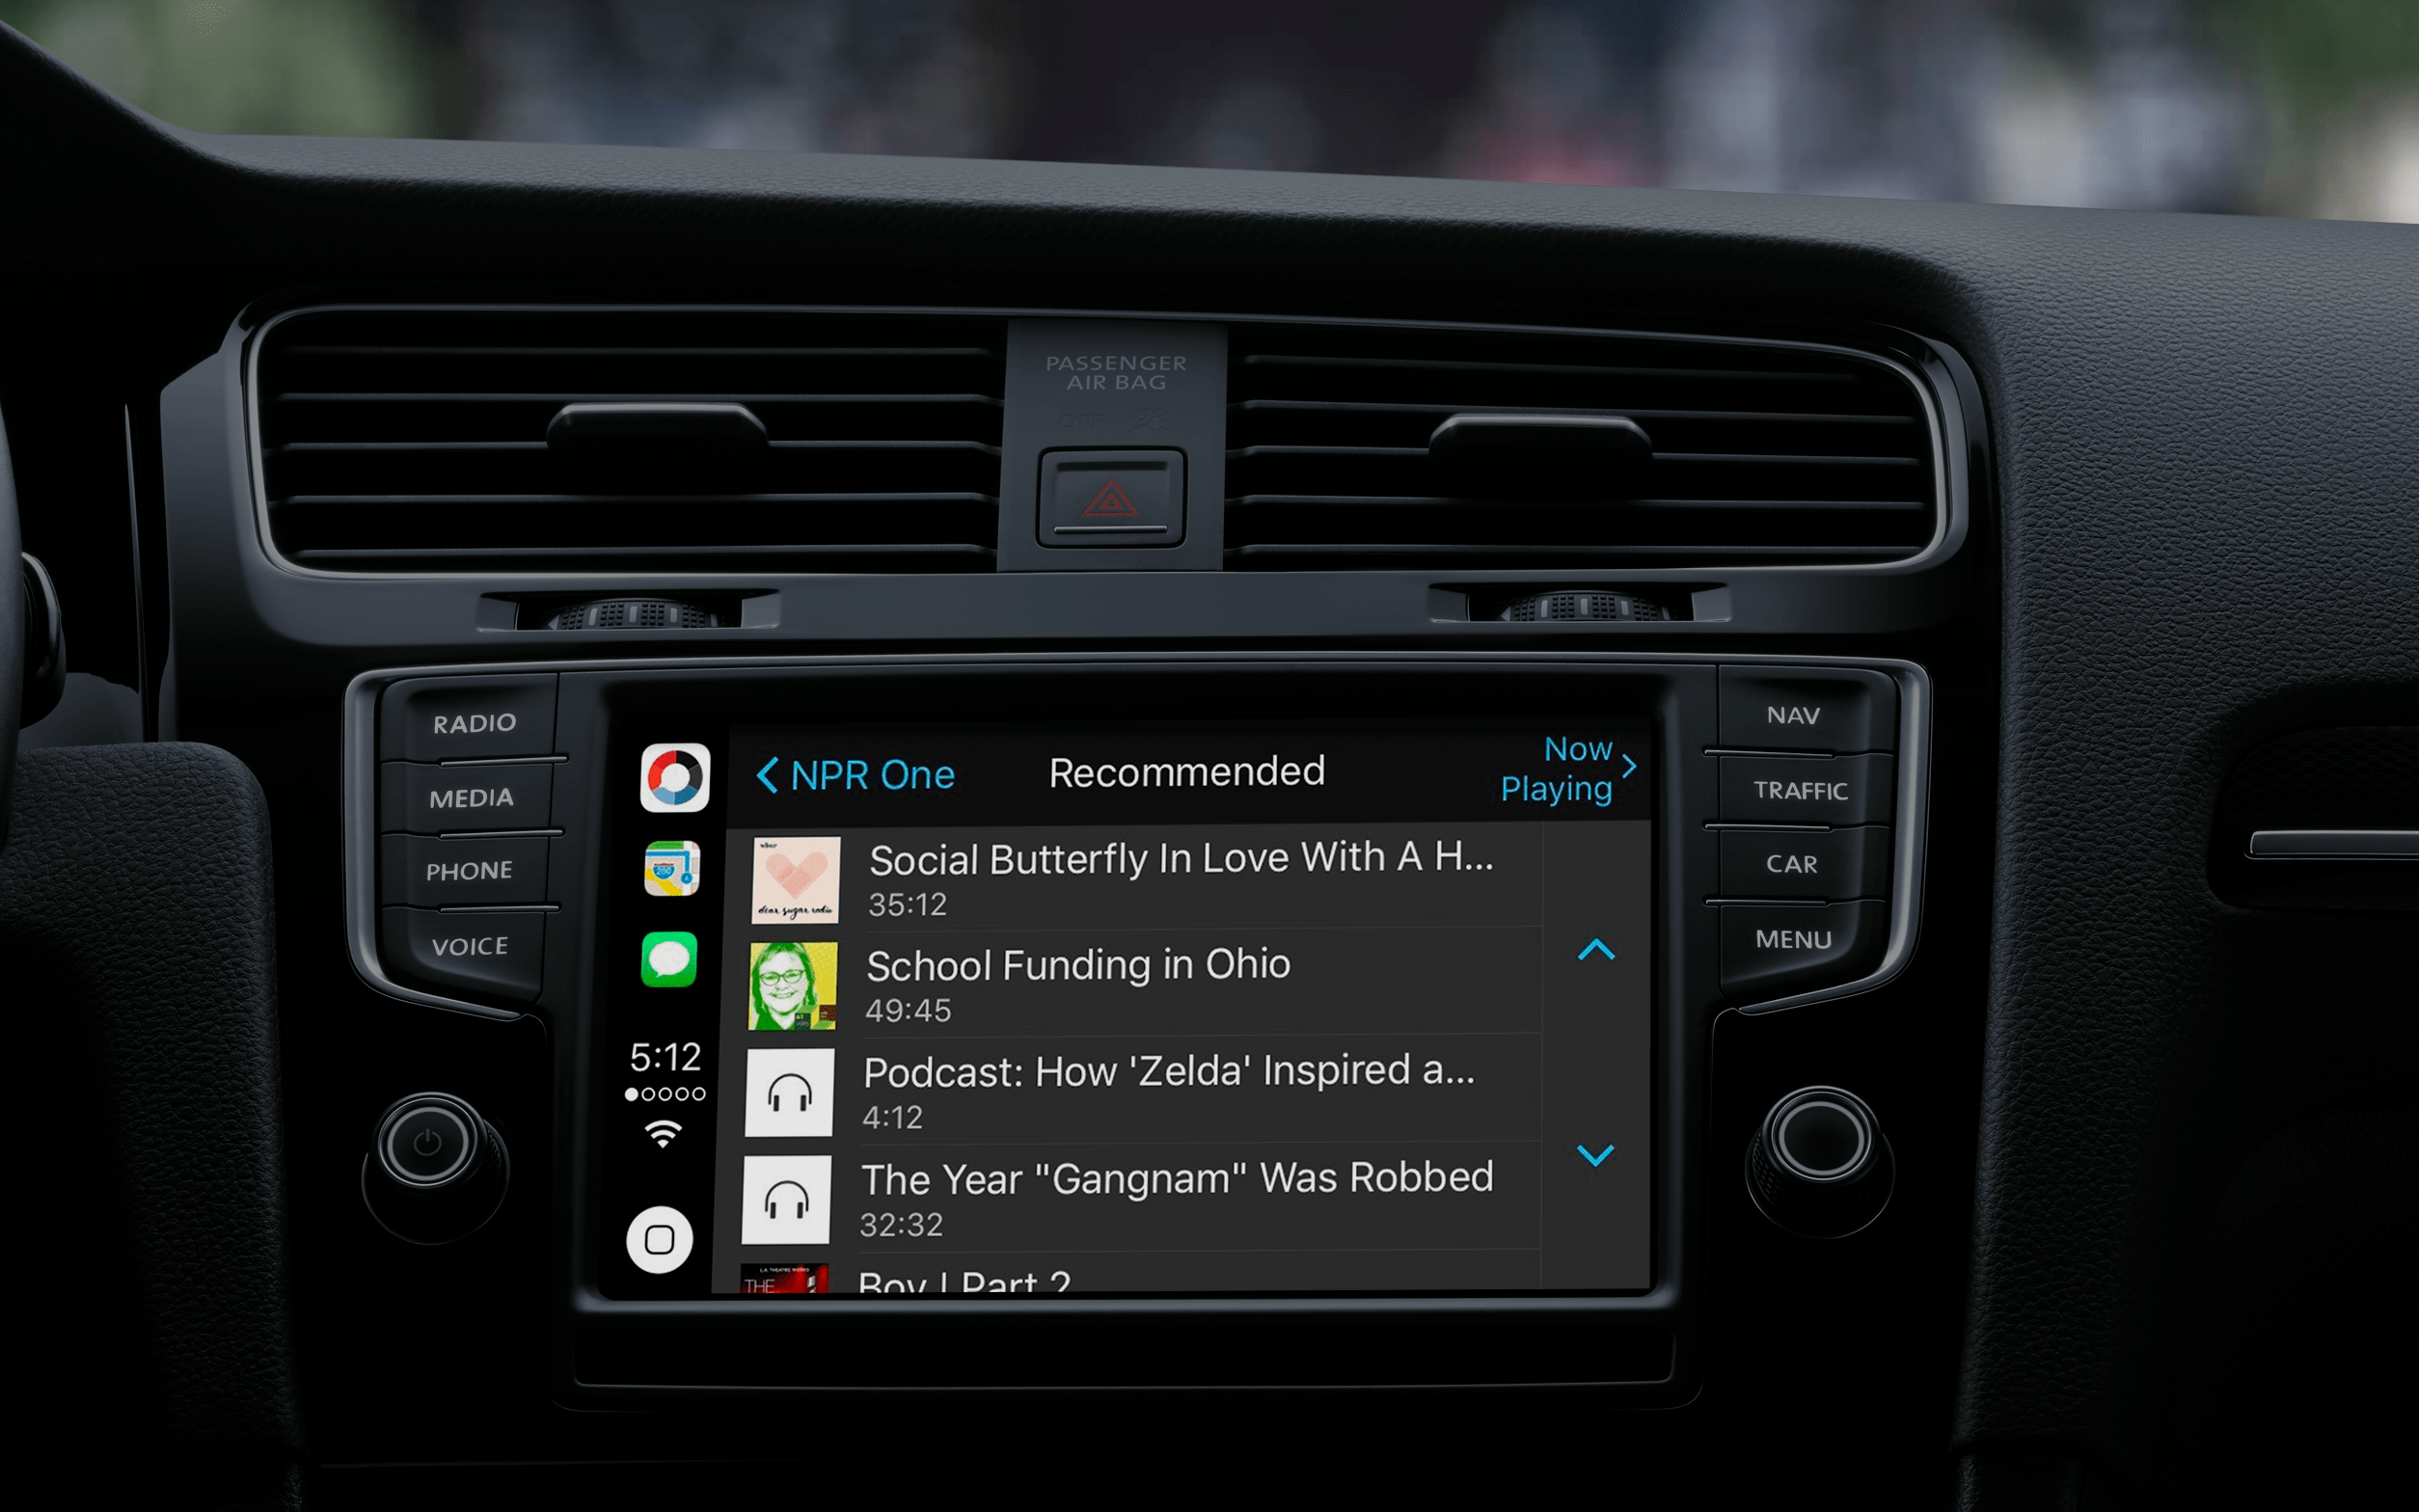 Apps supported by apple CarPlay: NRP One